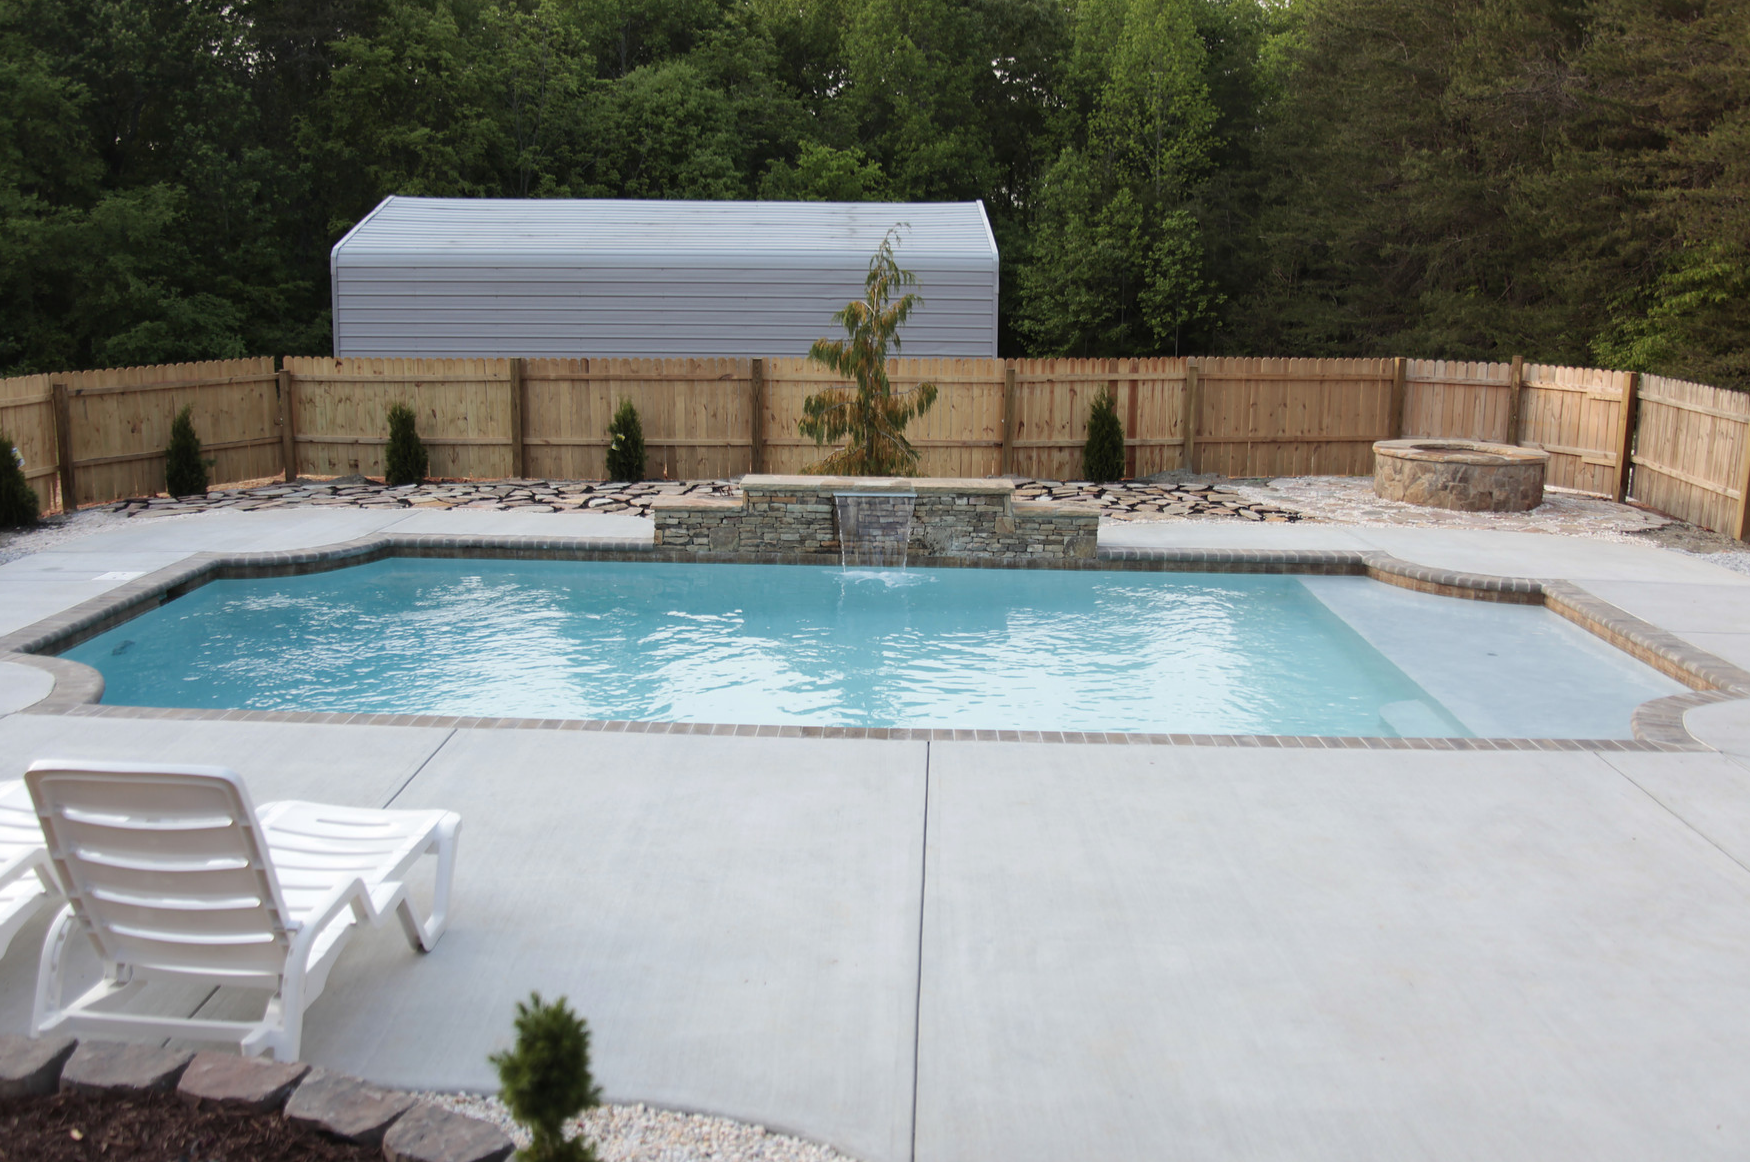 High End Custom Inground Concrete Pools from CPC Pools in Denver North Carolina 704-799-5236